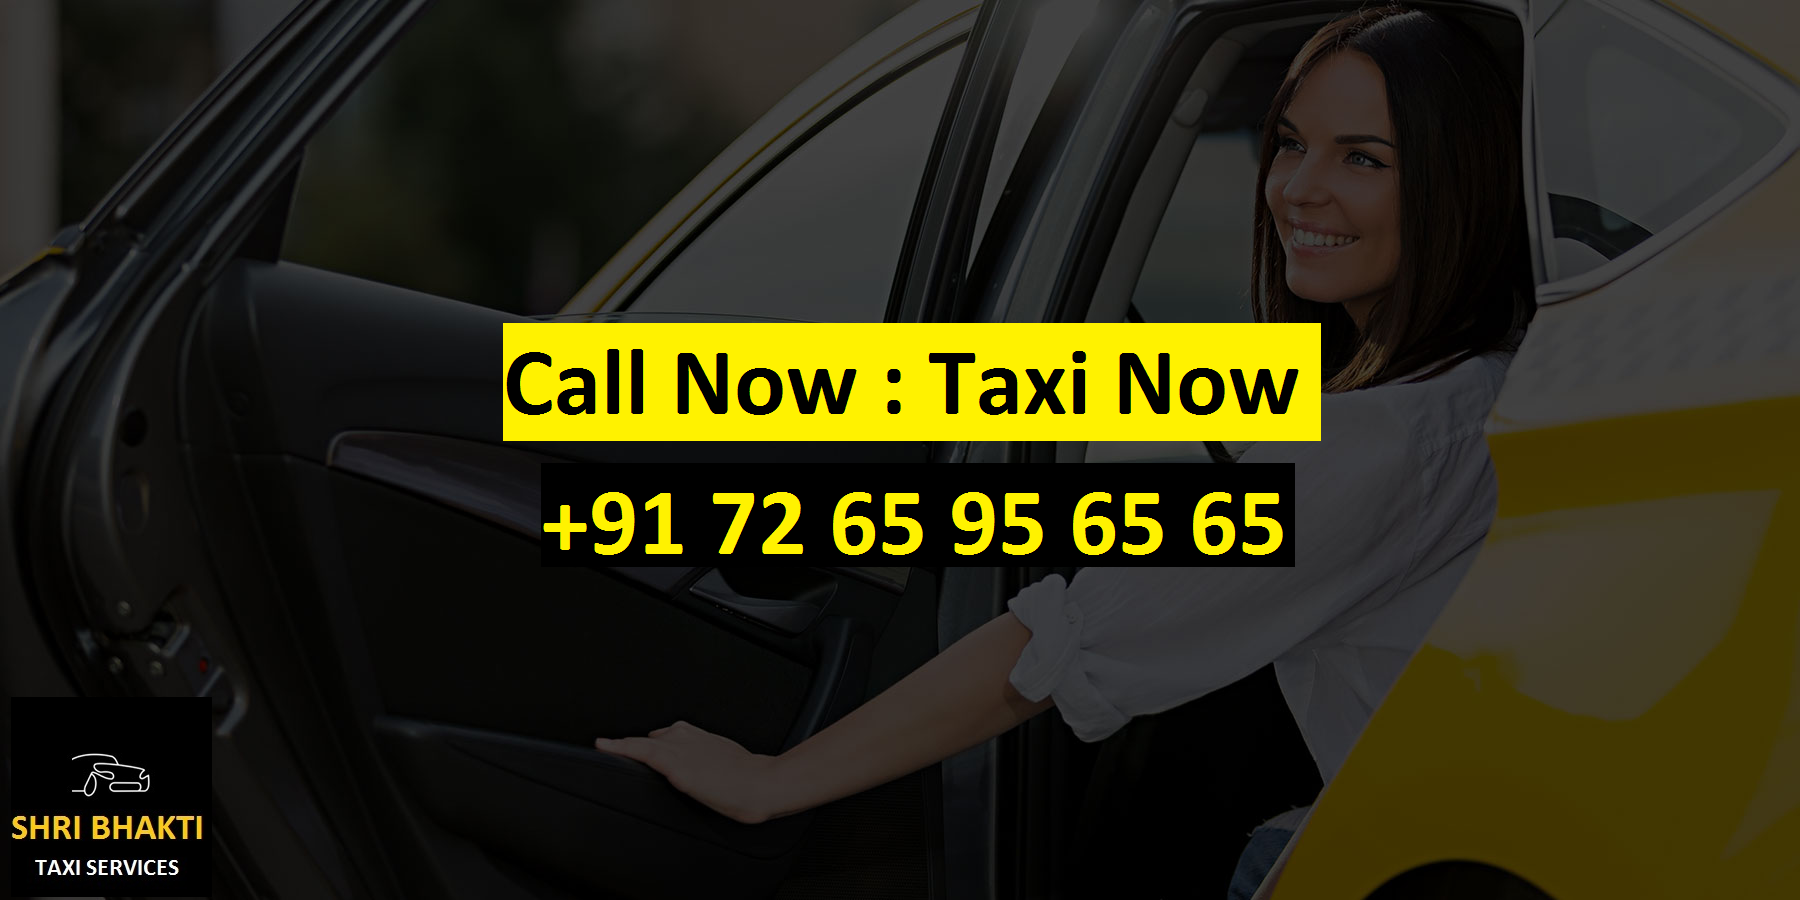 Call now : Taxi Now